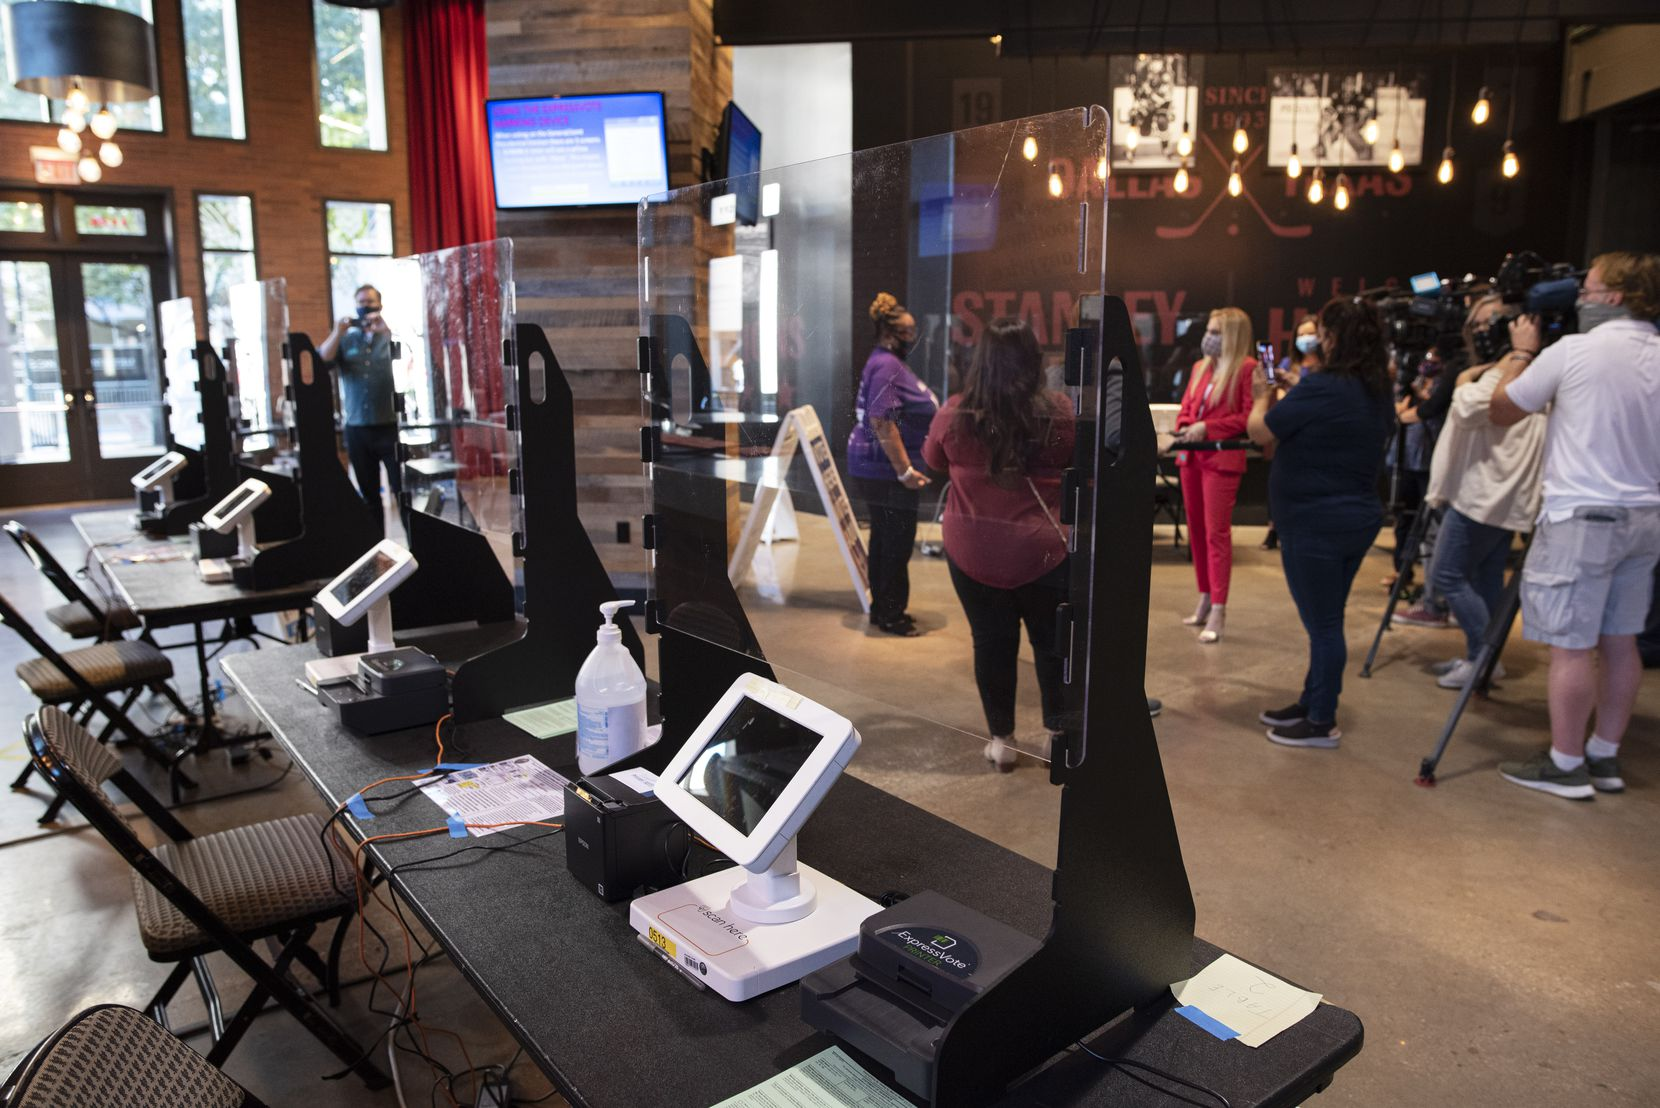 Voter check-in stations located inside a platinum level bar at the Dallas County Elections voting center inside the American Airlines Center in Dallas, on Monday, Oct. 12, 2020. The voting center has 20 check-in stations and 50 voting machines inside the AAC.